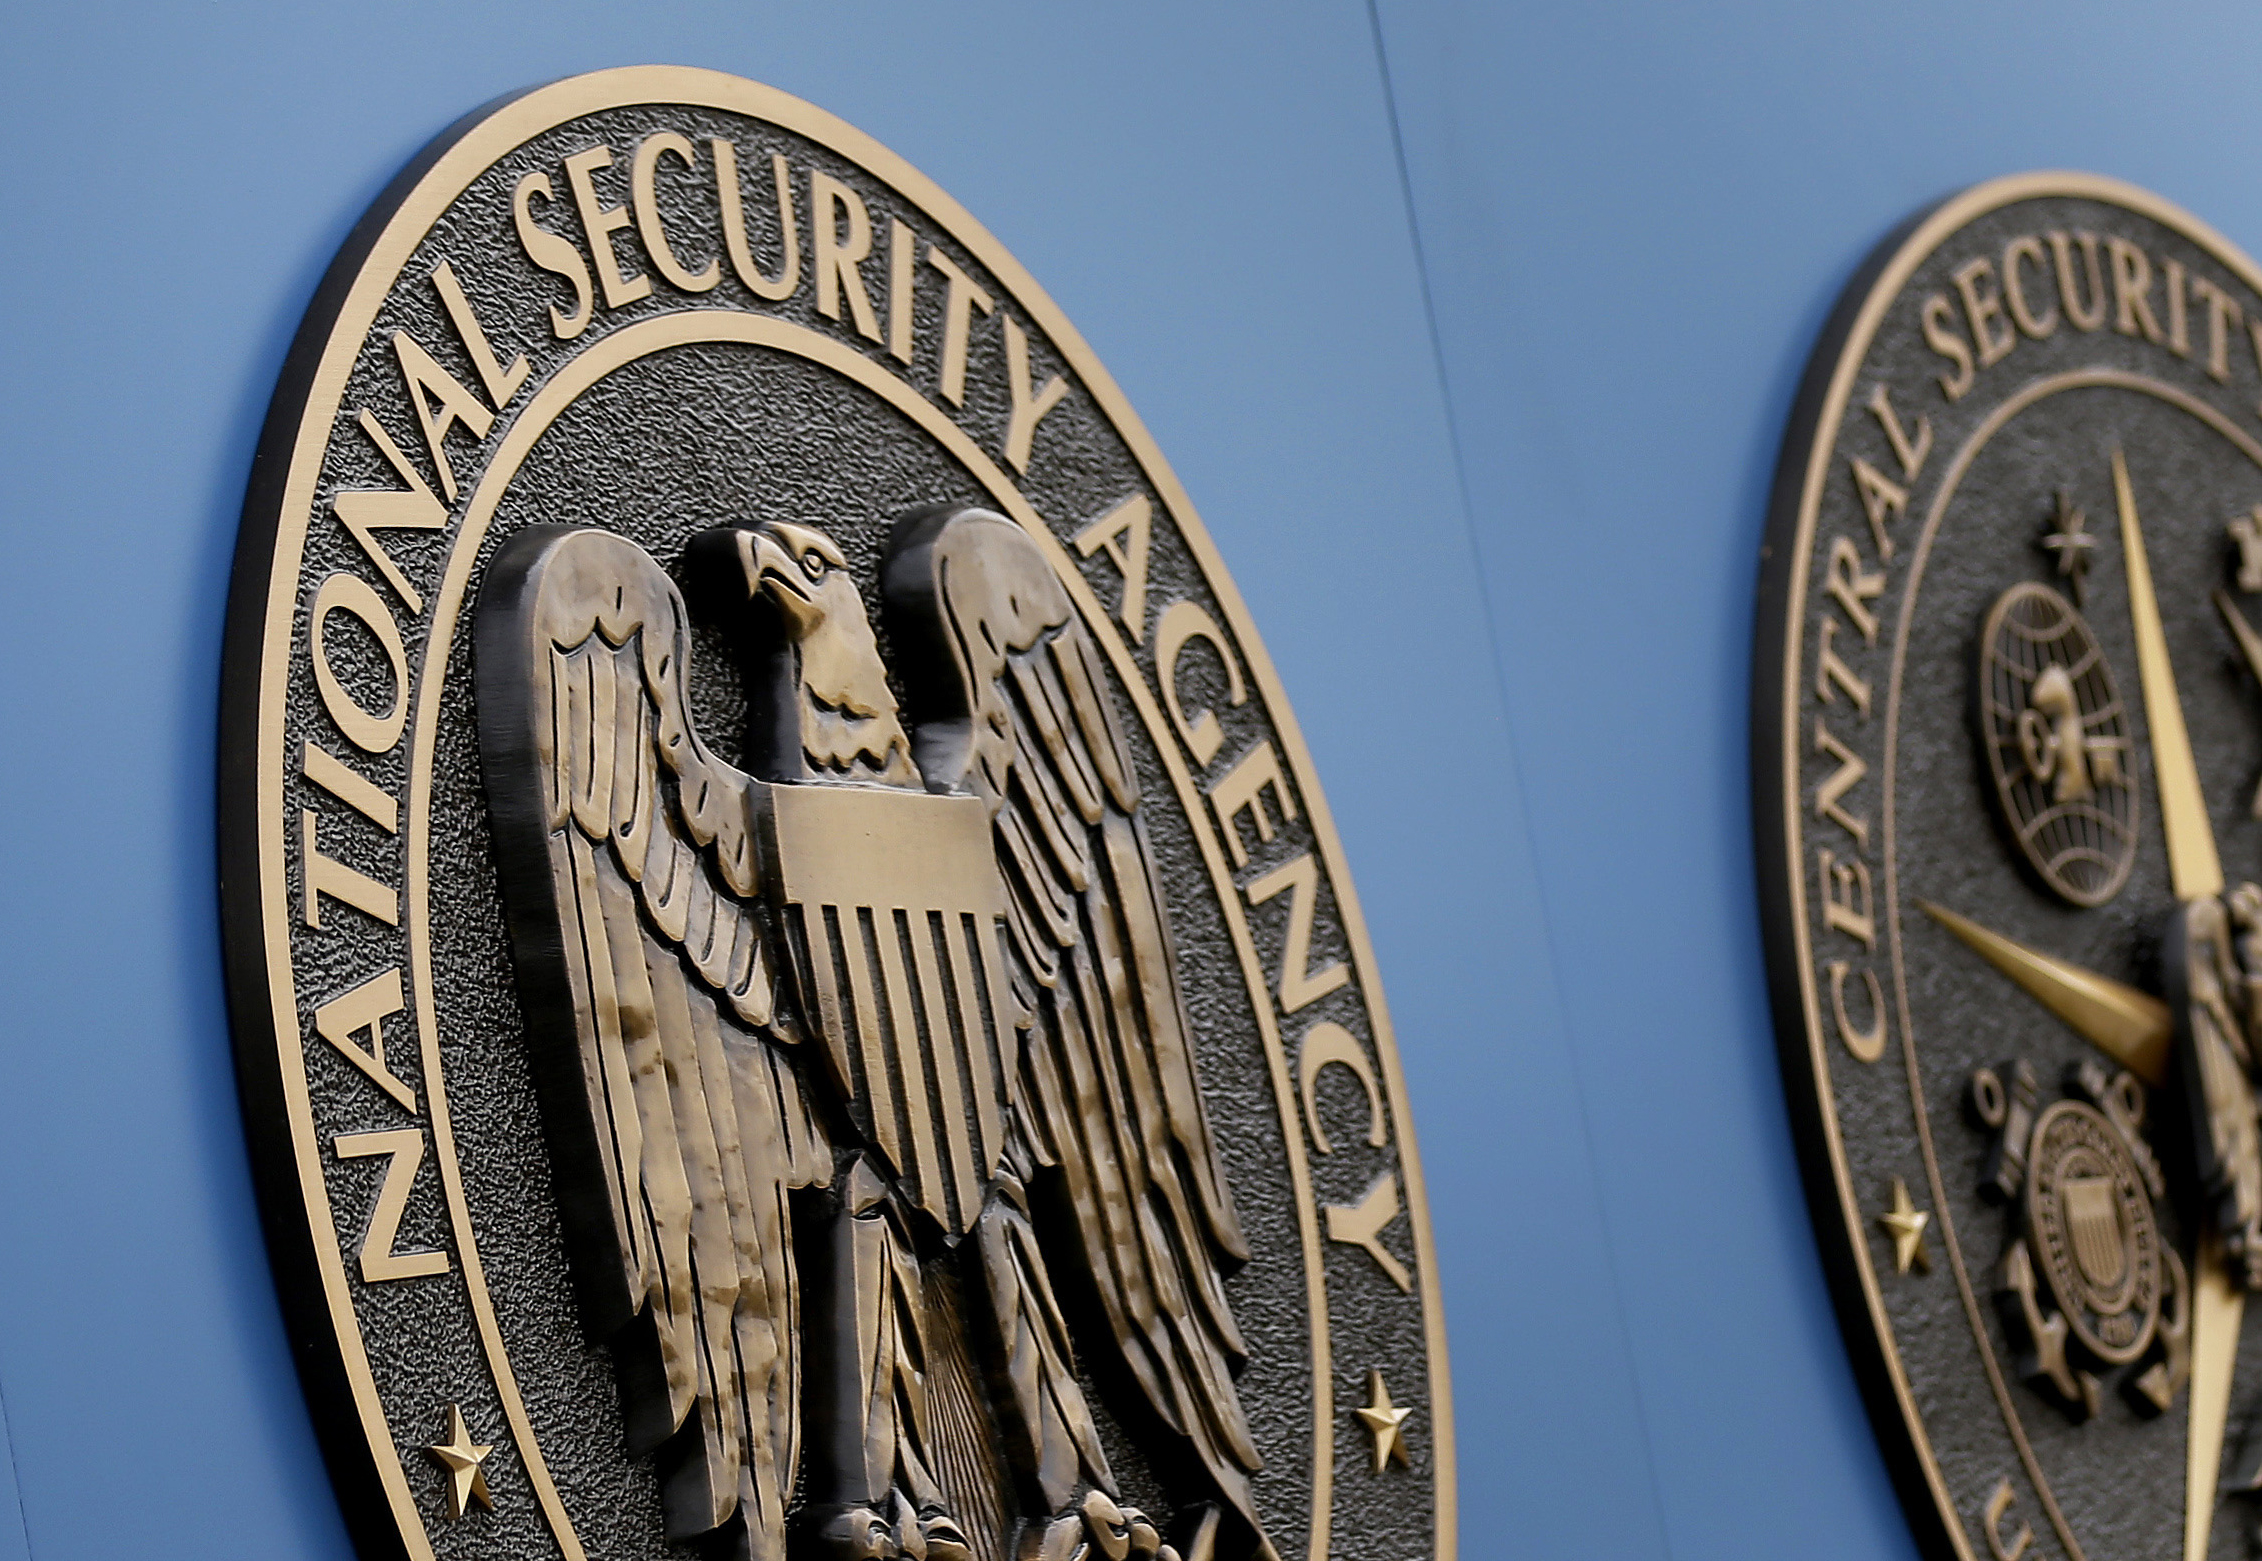 This Thursday, June 6, 2013, file photo, shows a sign outside the National Security Agency campus in Fort Meade, Md.